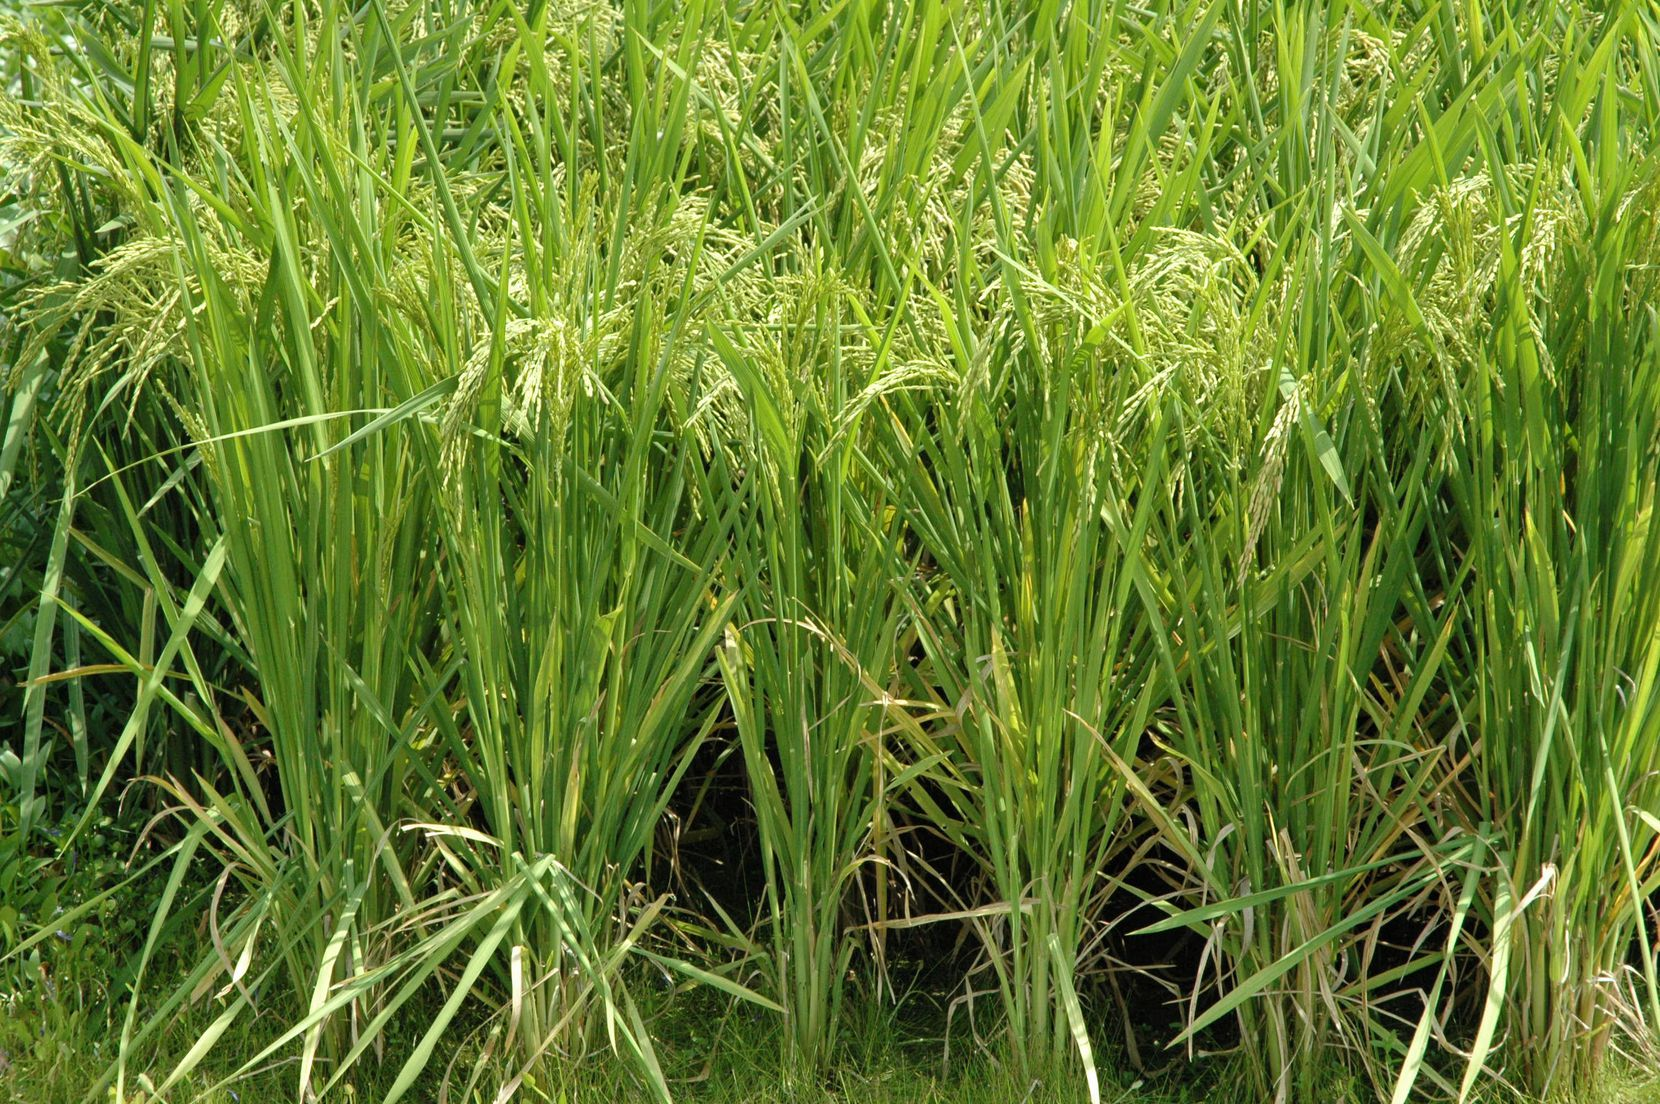 In this 2011 file photo, rice nearing harvest is seen at the Texas A&M AgriLife Research Center near Beaumont.